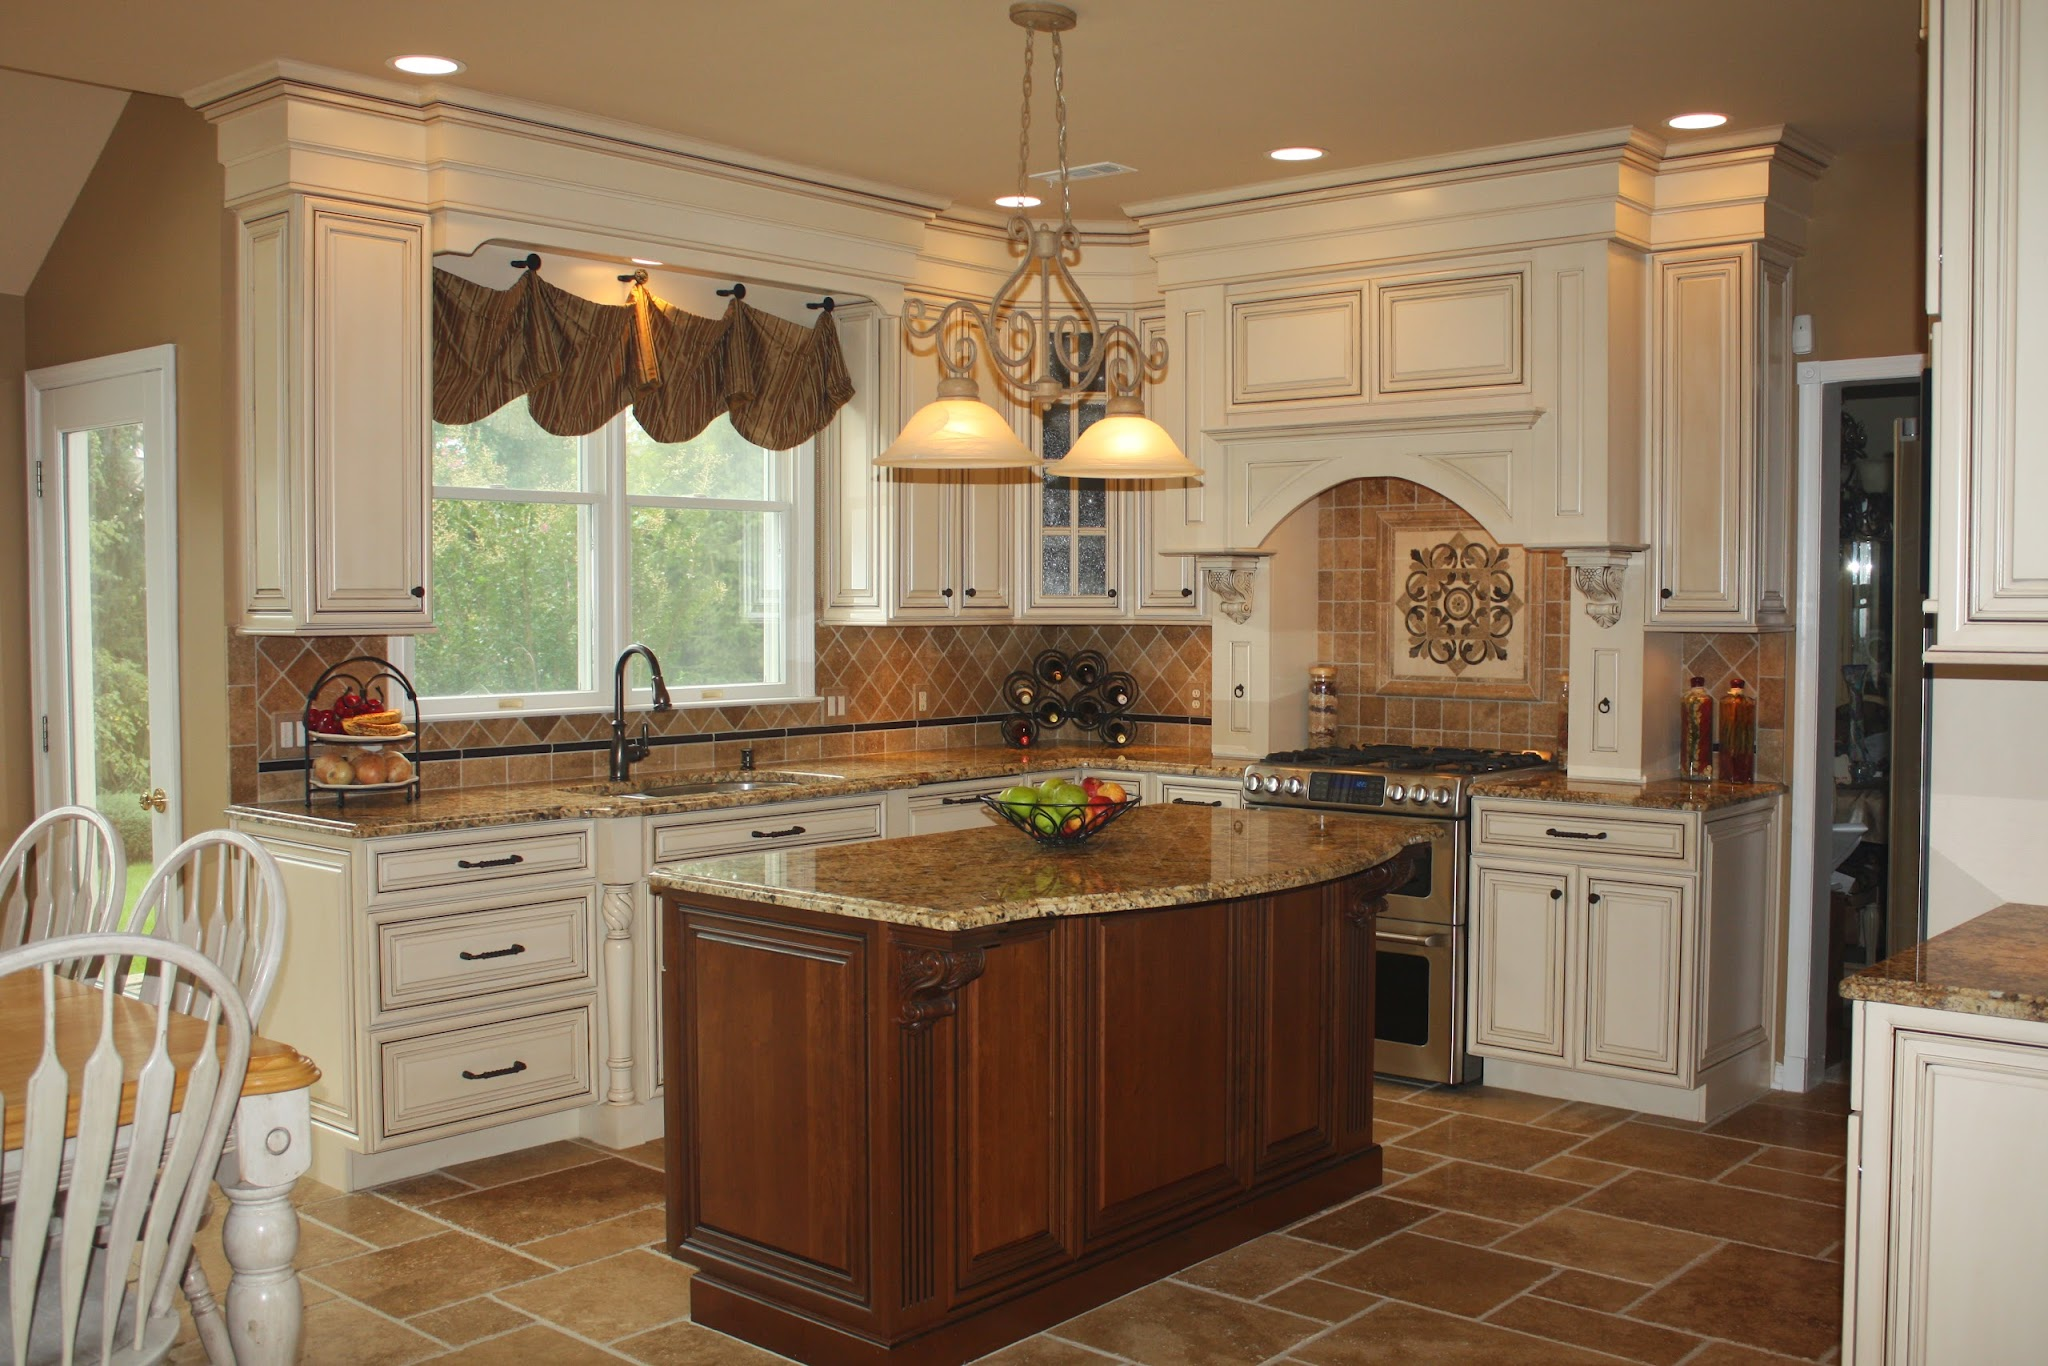 Houzz kitchen dreams house furniture for Home kitchen remodeling